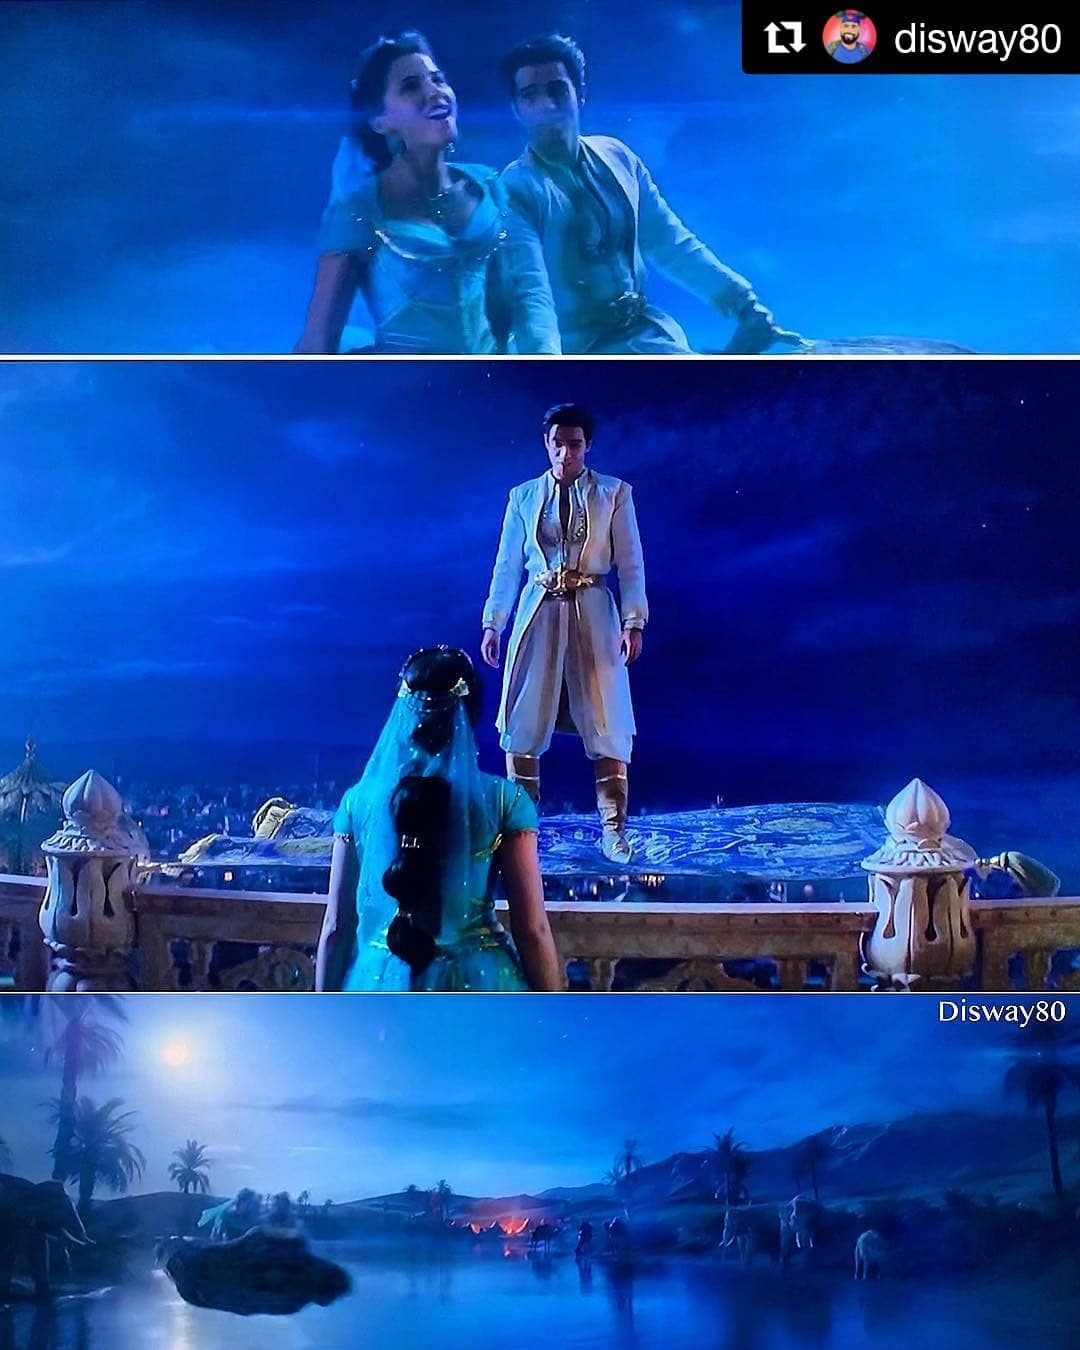 Um Mundo Ideal Repost Disway80 What A Whole New World